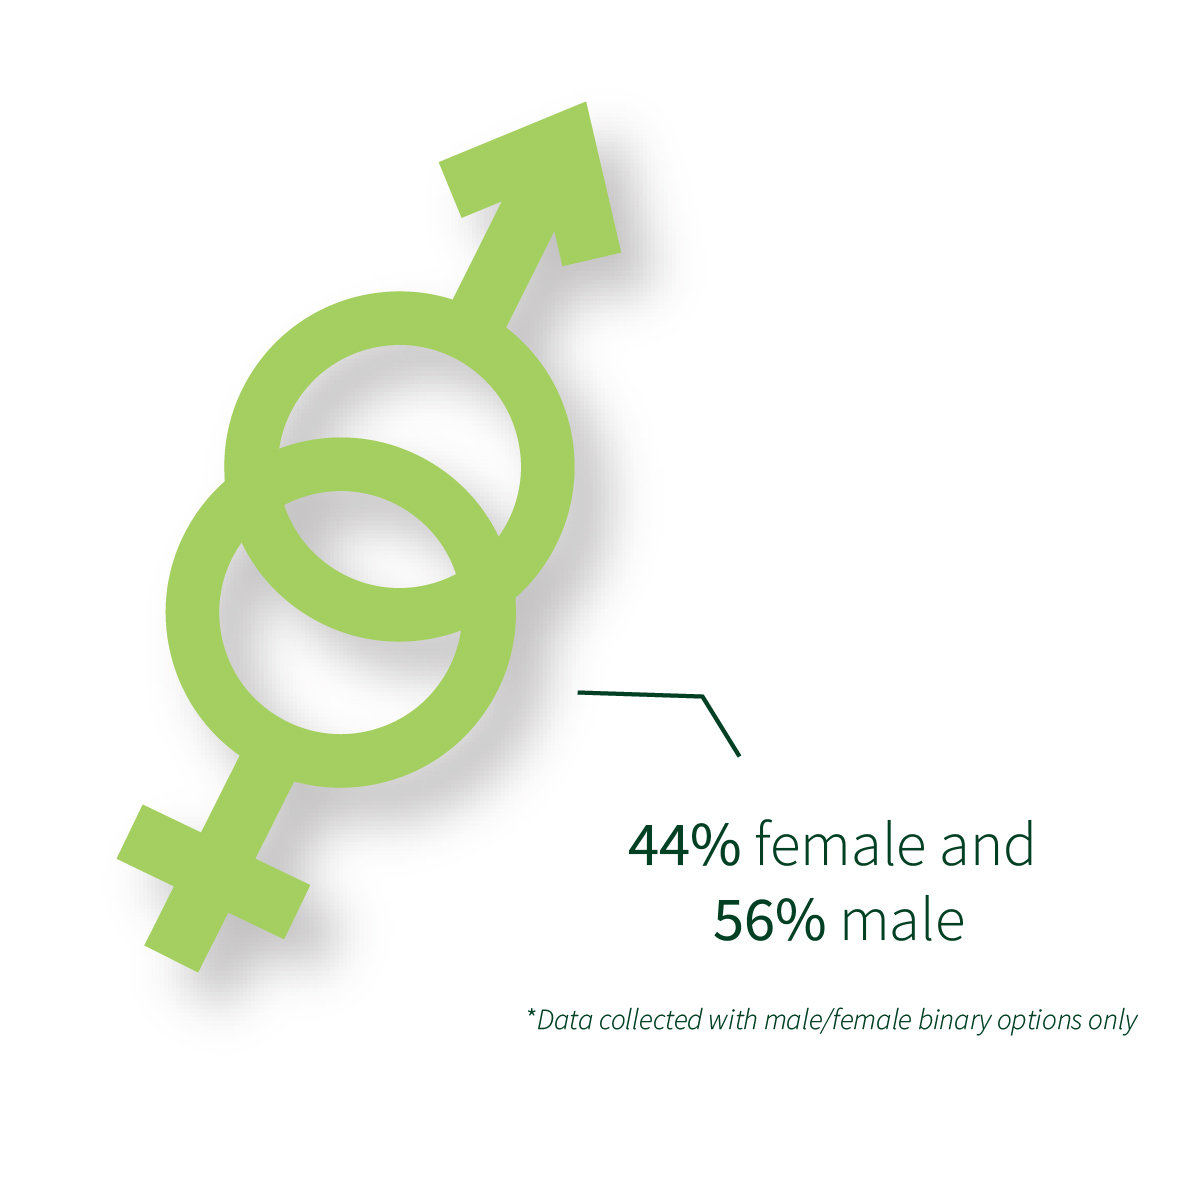 44% female and 56% male * Data collected with a male/female binary